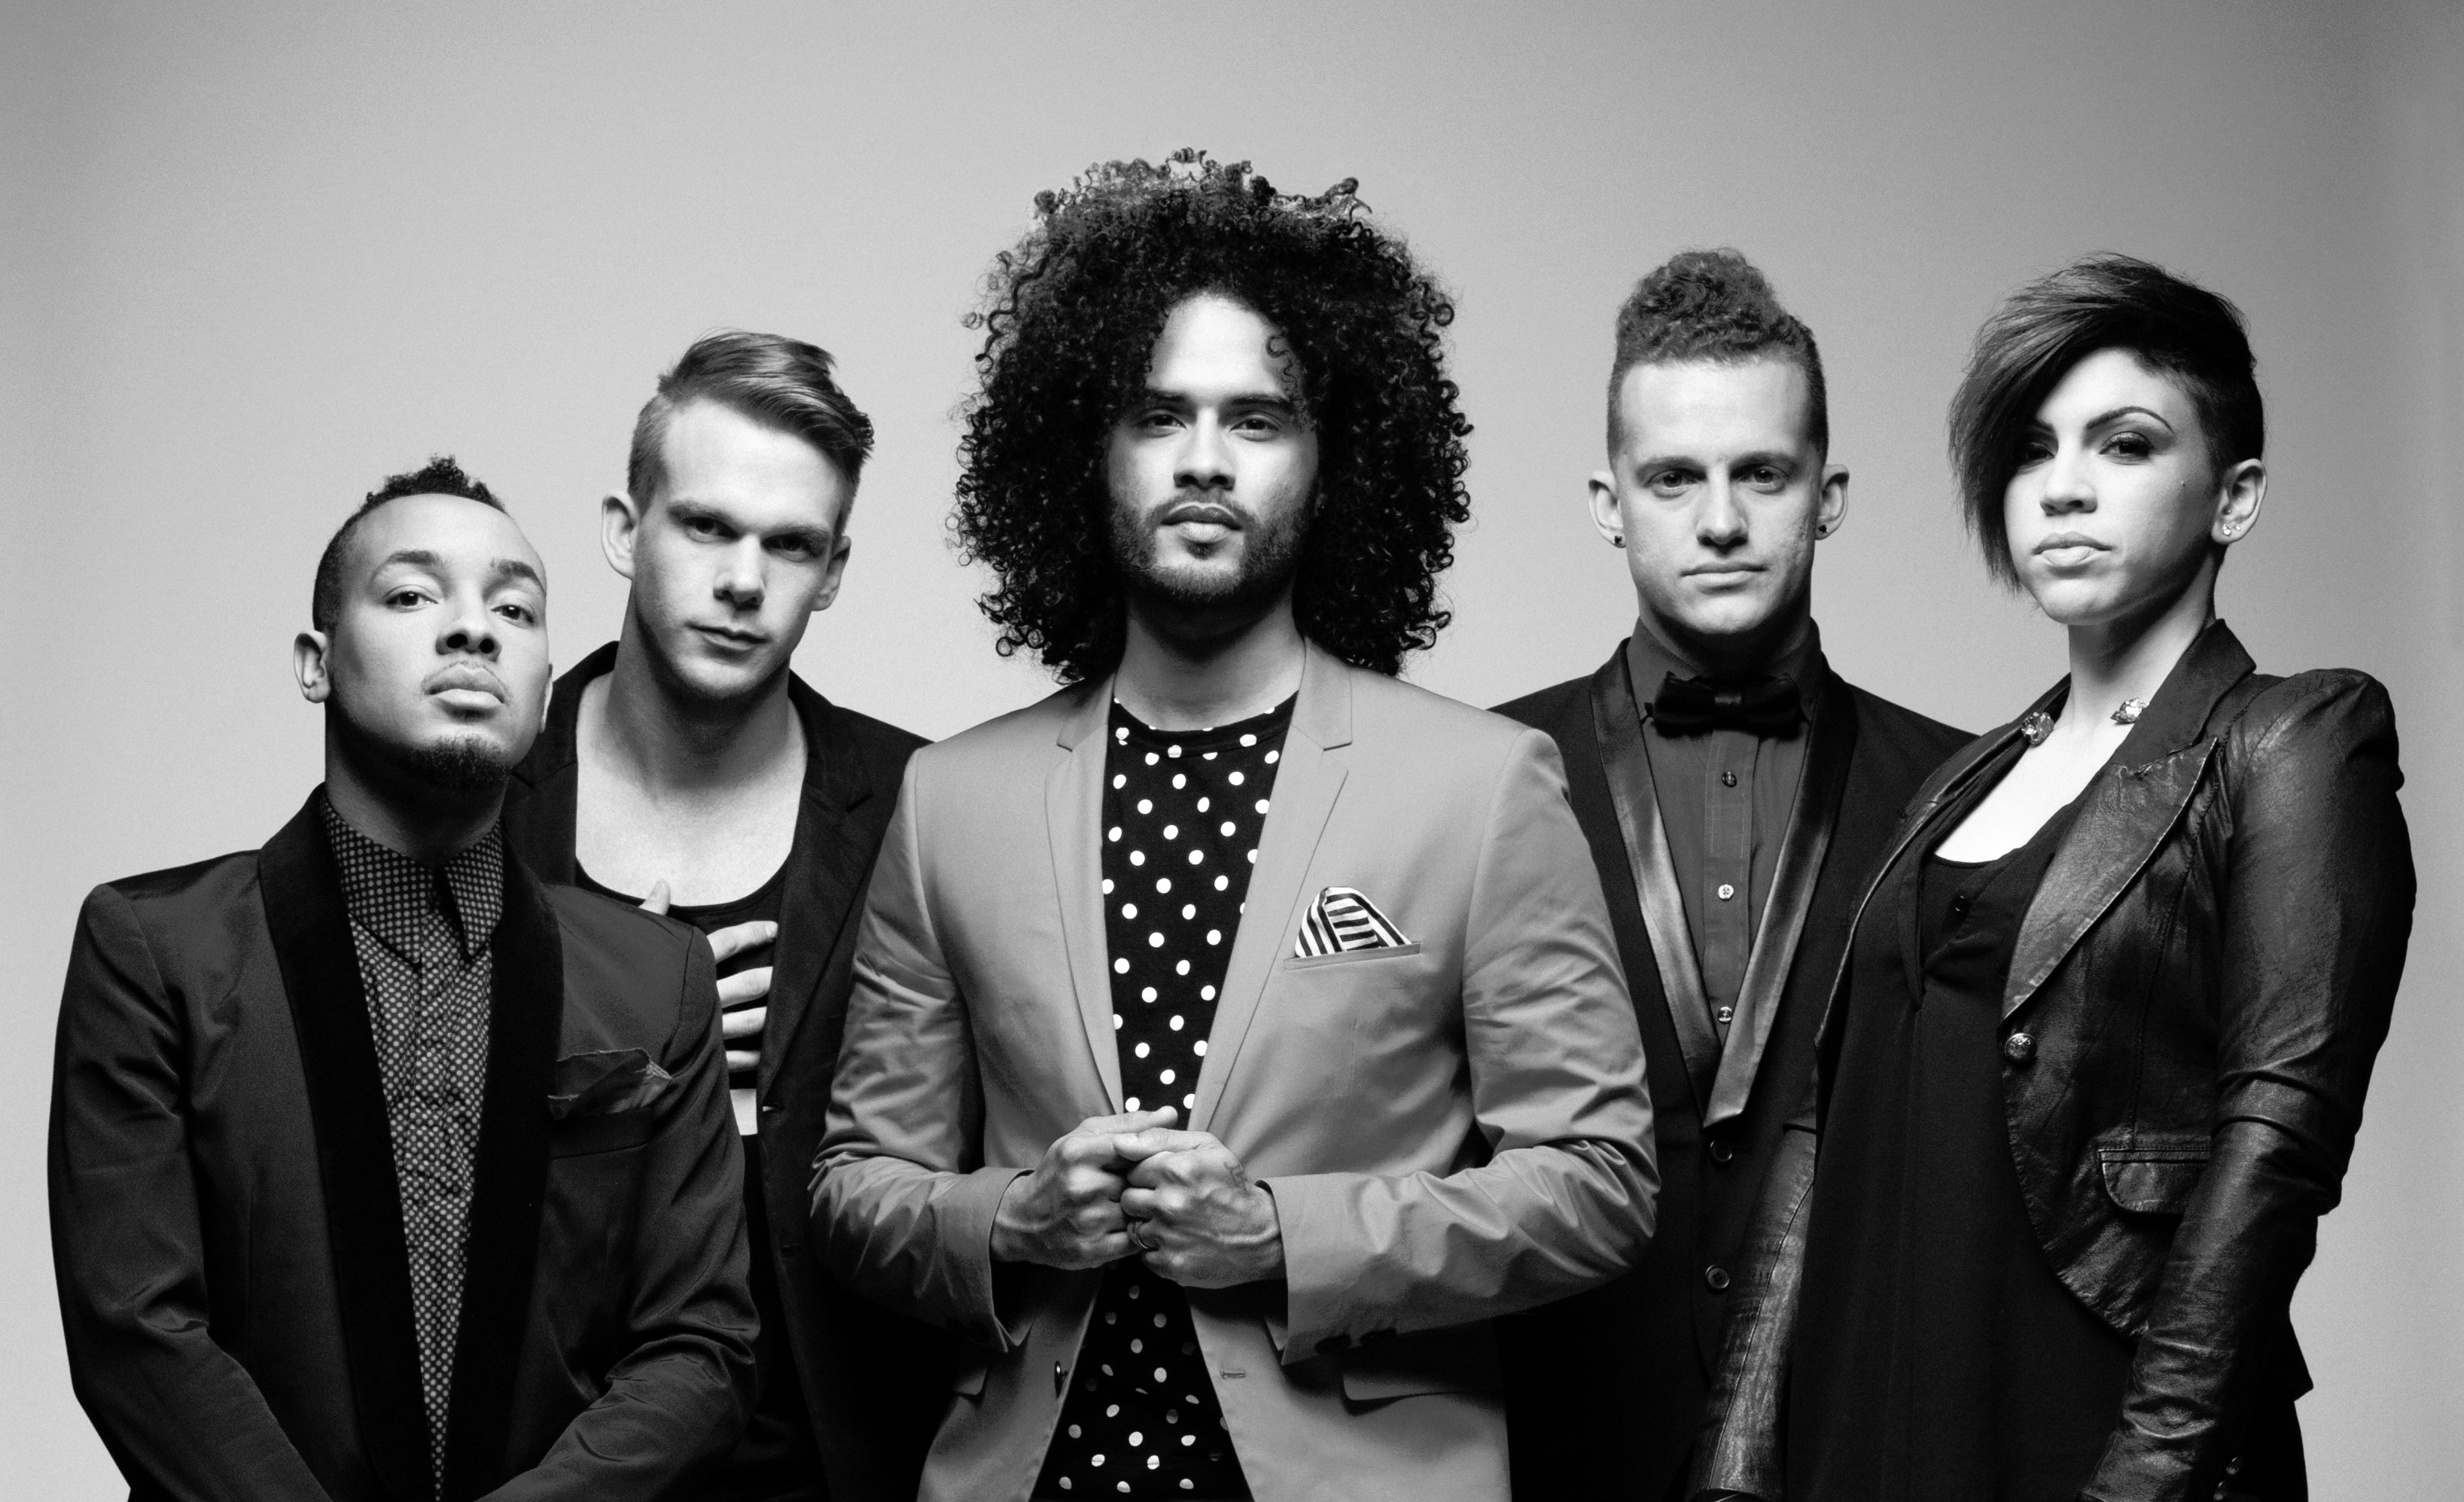 group 1 crew discography group one crew artist database. Black Bedroom Furniture Sets. Home Design Ideas